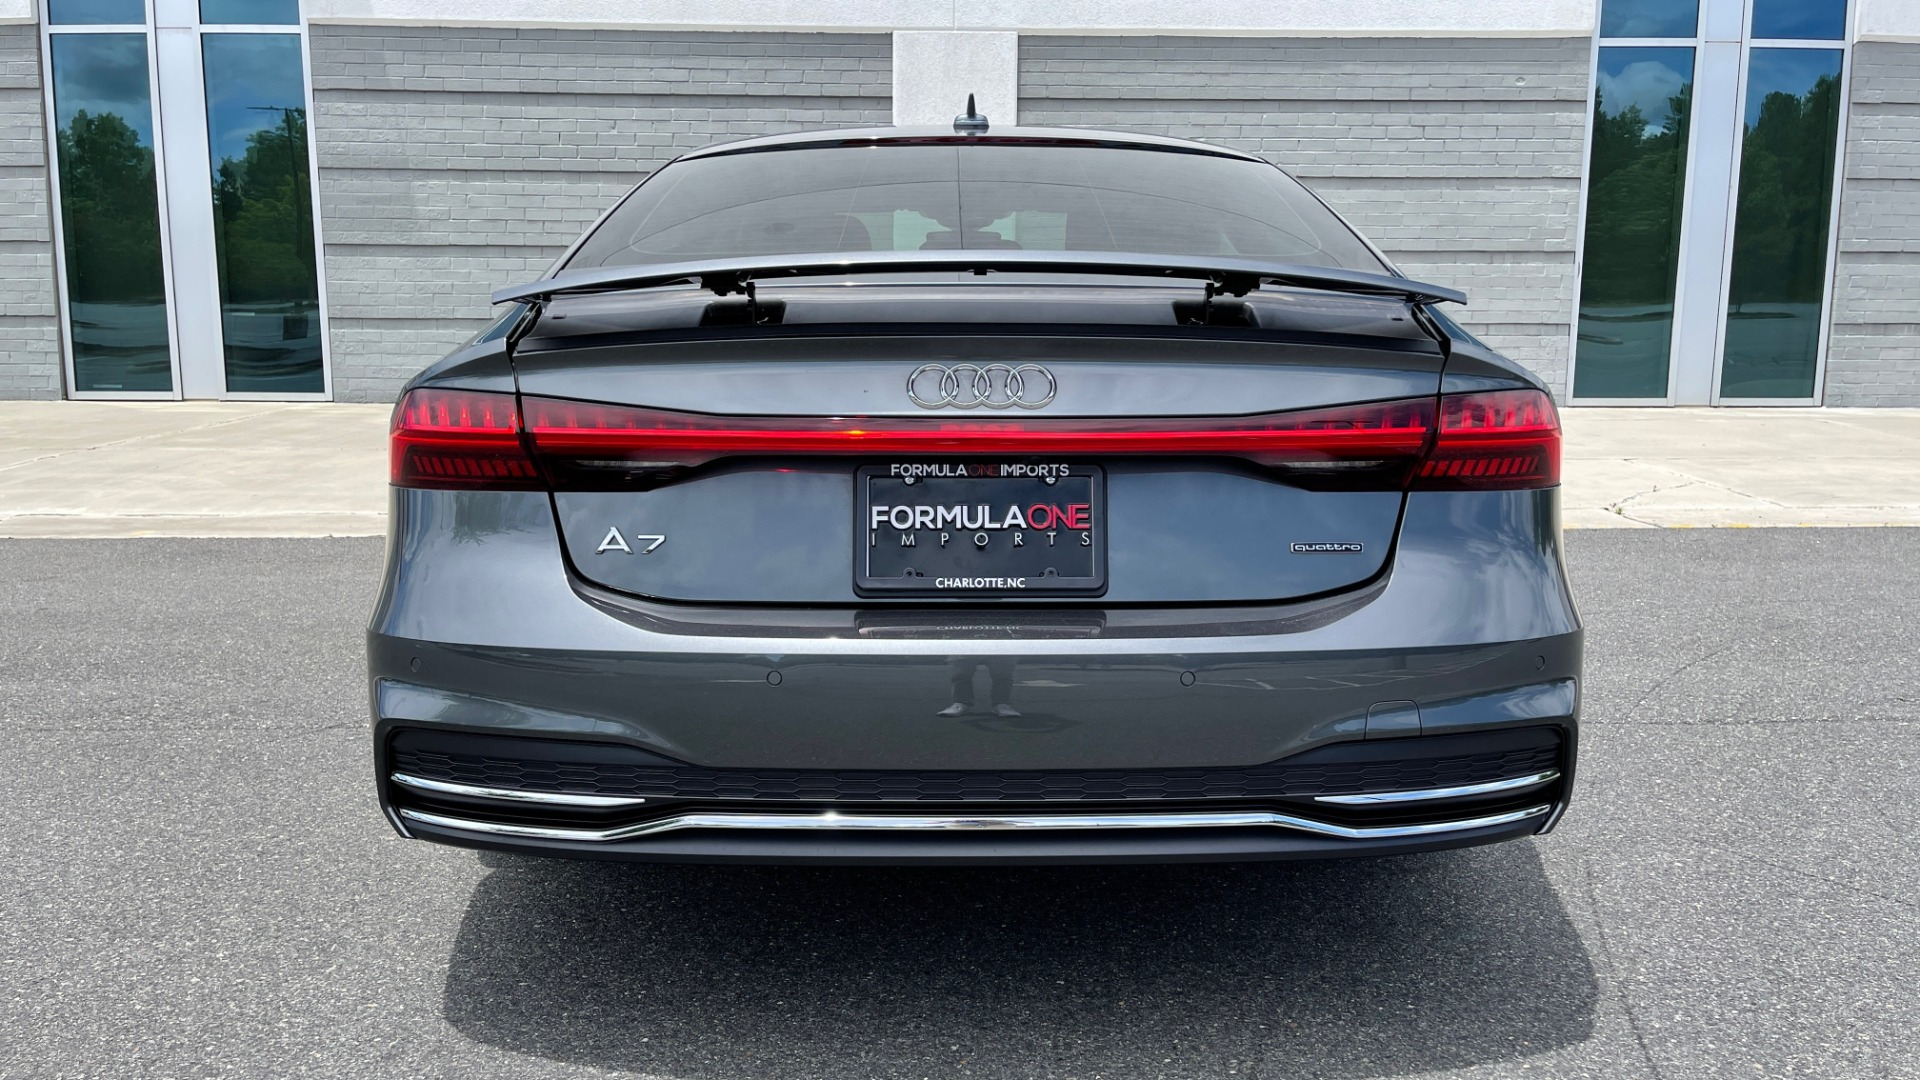 Used 2019 Audi A7 PRESTIGE 55 TFSI 3.0T / NAV / B&O SND / SUNROOF / S-LINE / 21IN WHLS / REAR for sale $66,995 at Formula Imports in Charlotte NC 28227 24